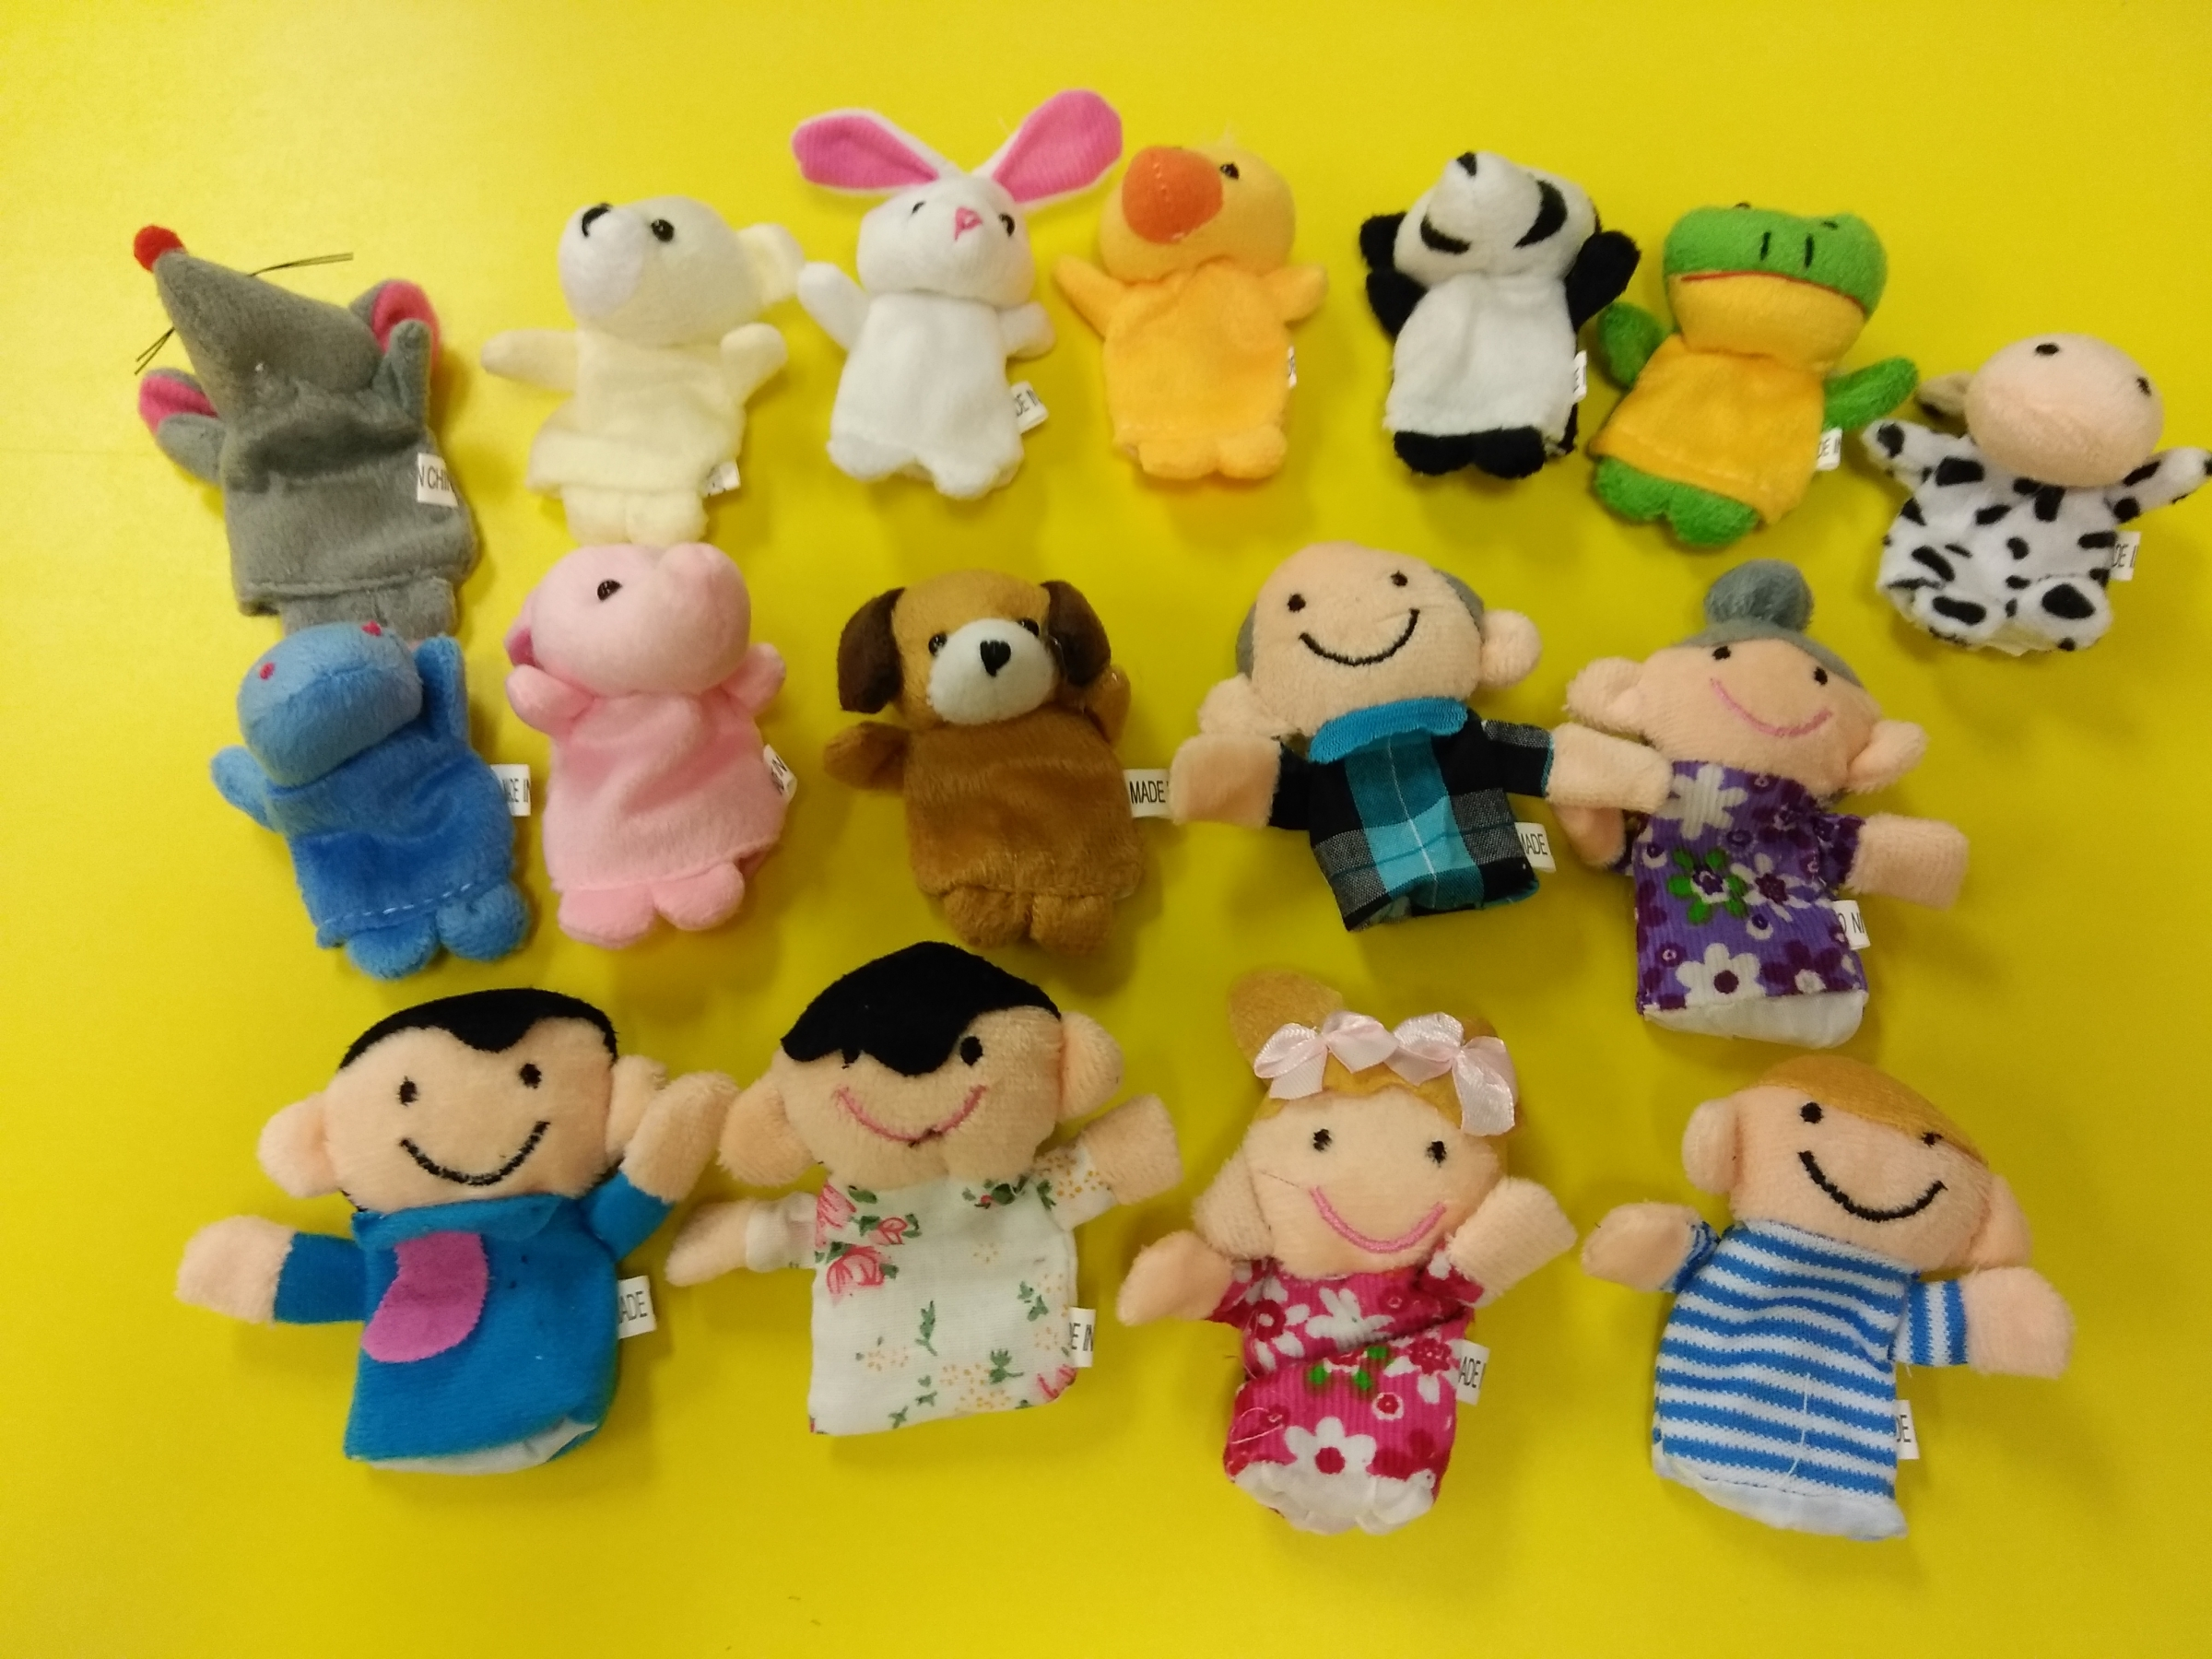 Fun finger puppets!